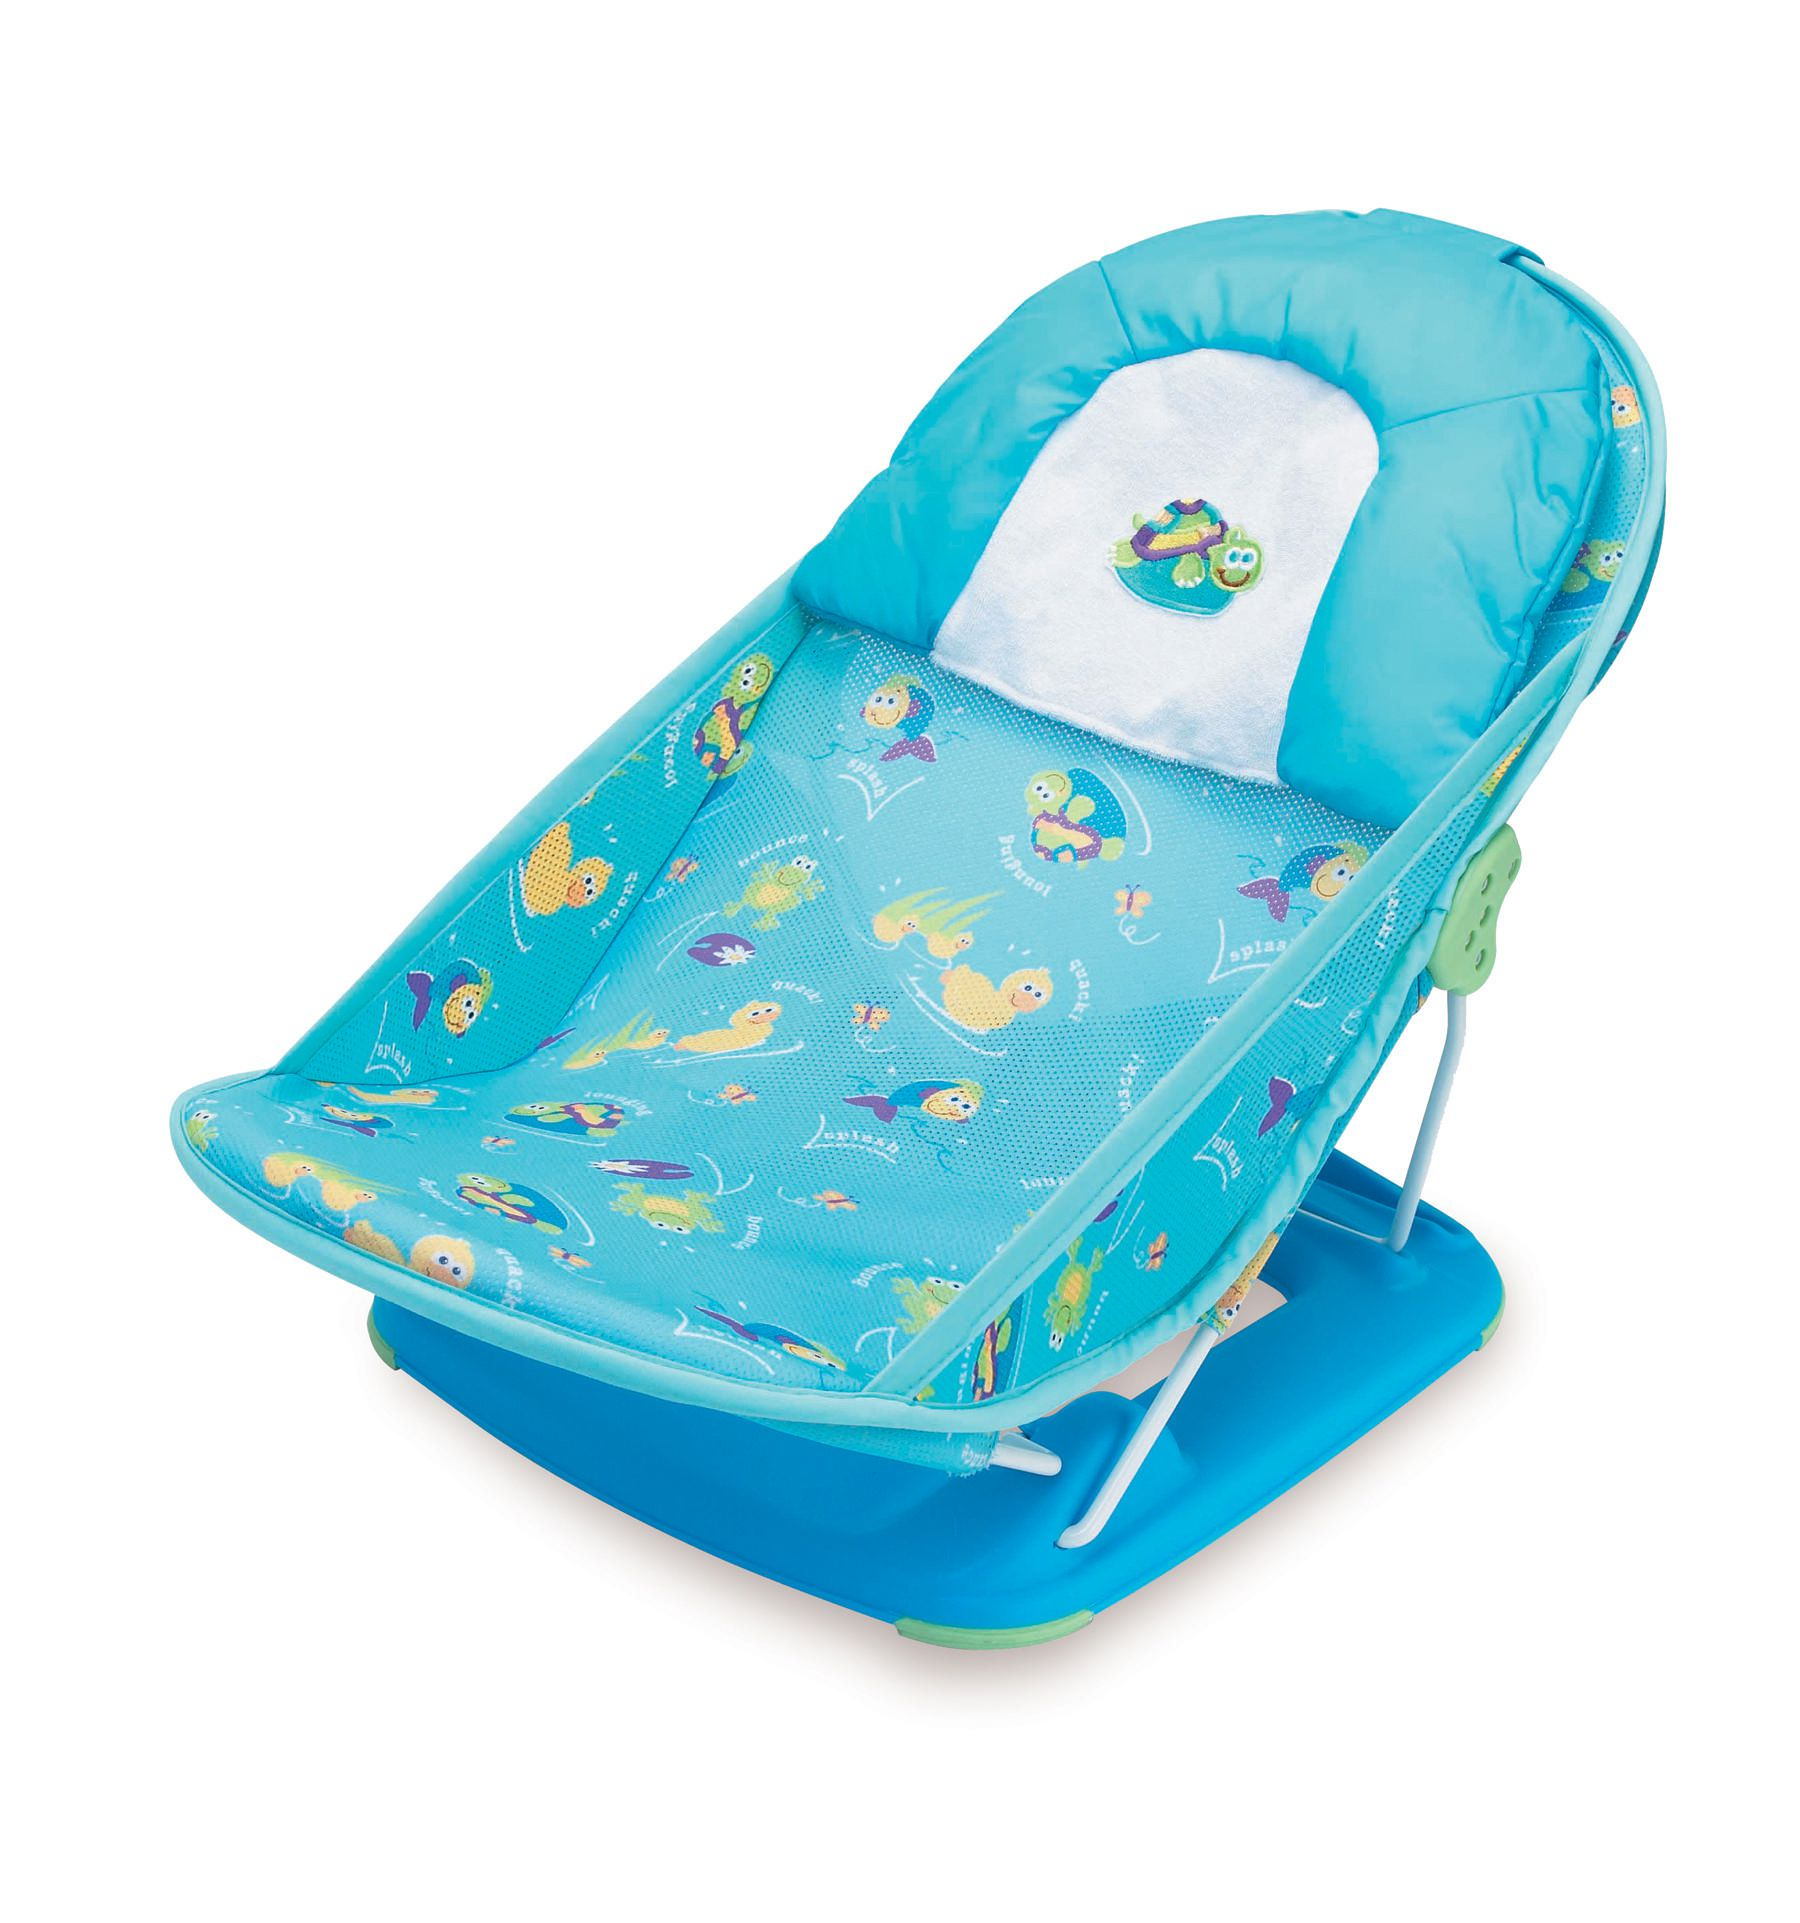 Summer Infant Deluxe Bather | Walmart Canada